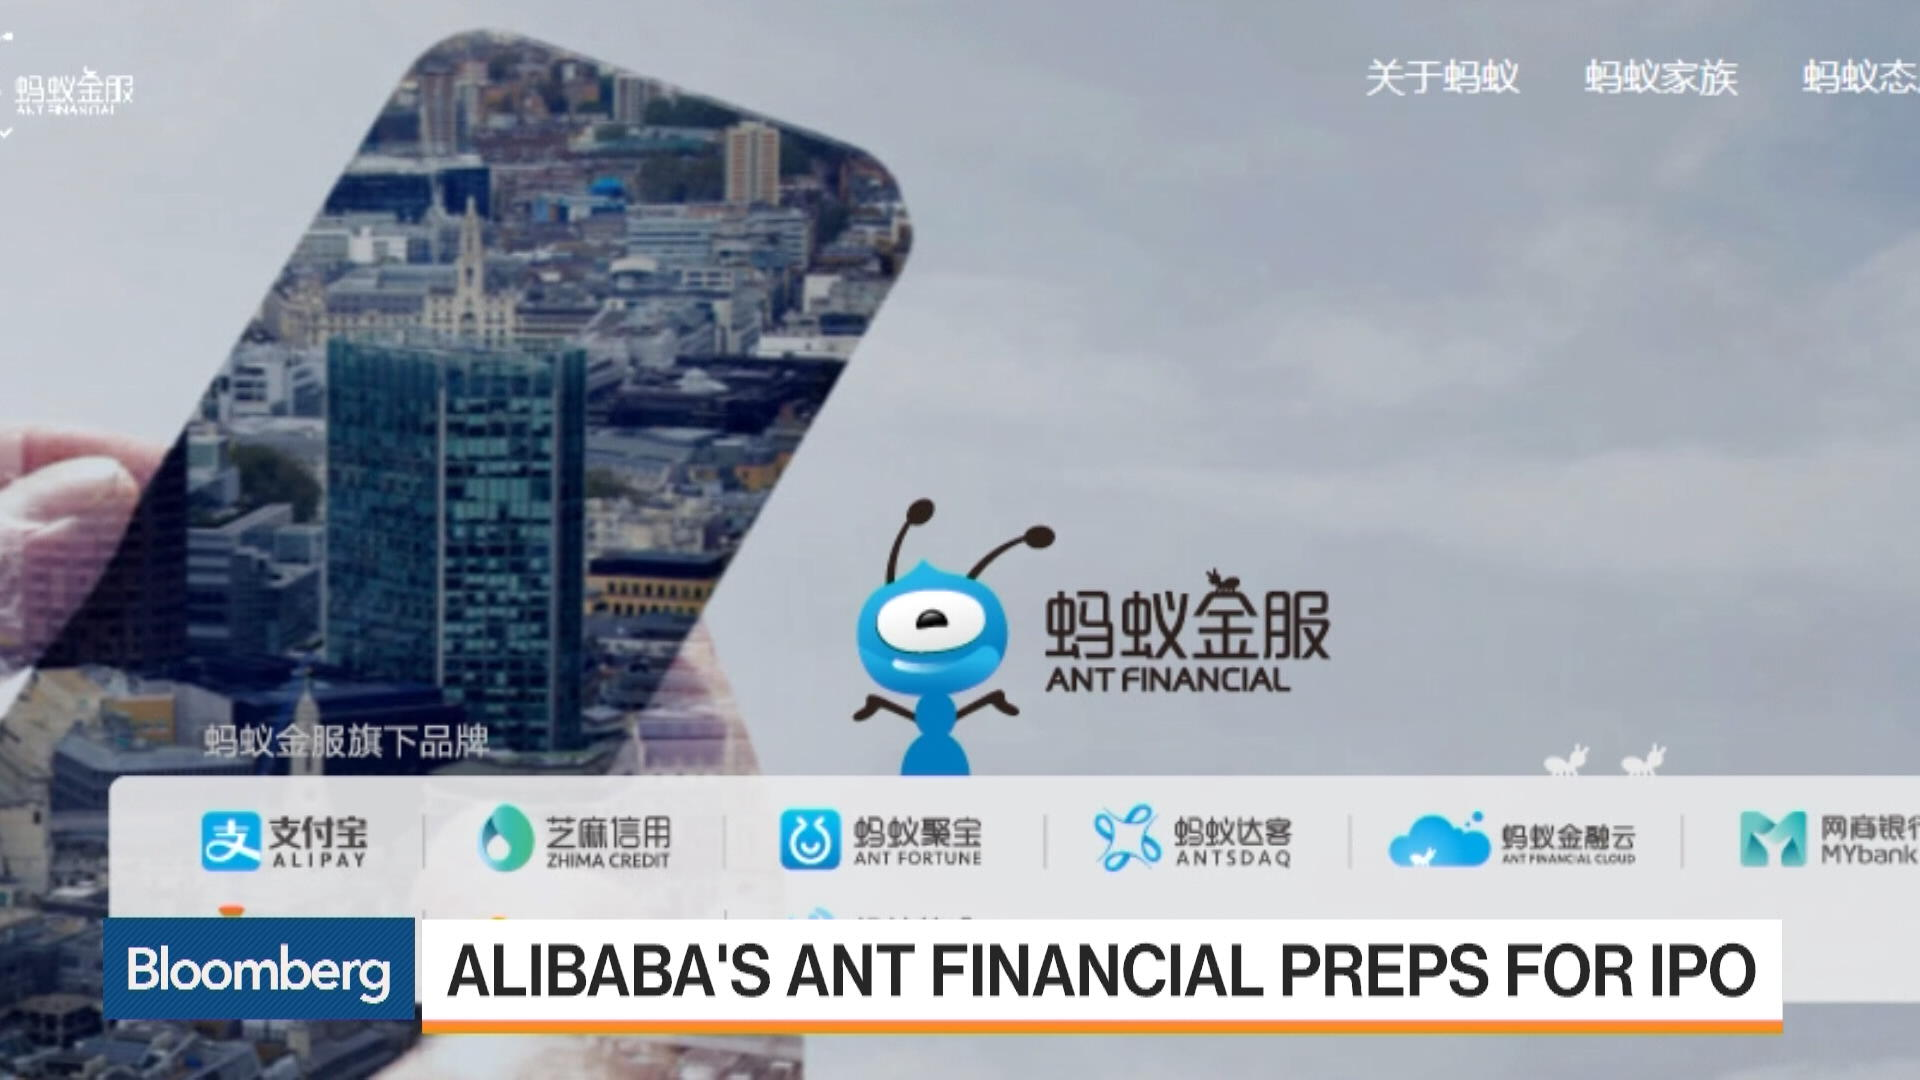 Alibaba's Ant Financial Preps for IPO - Bloomberg